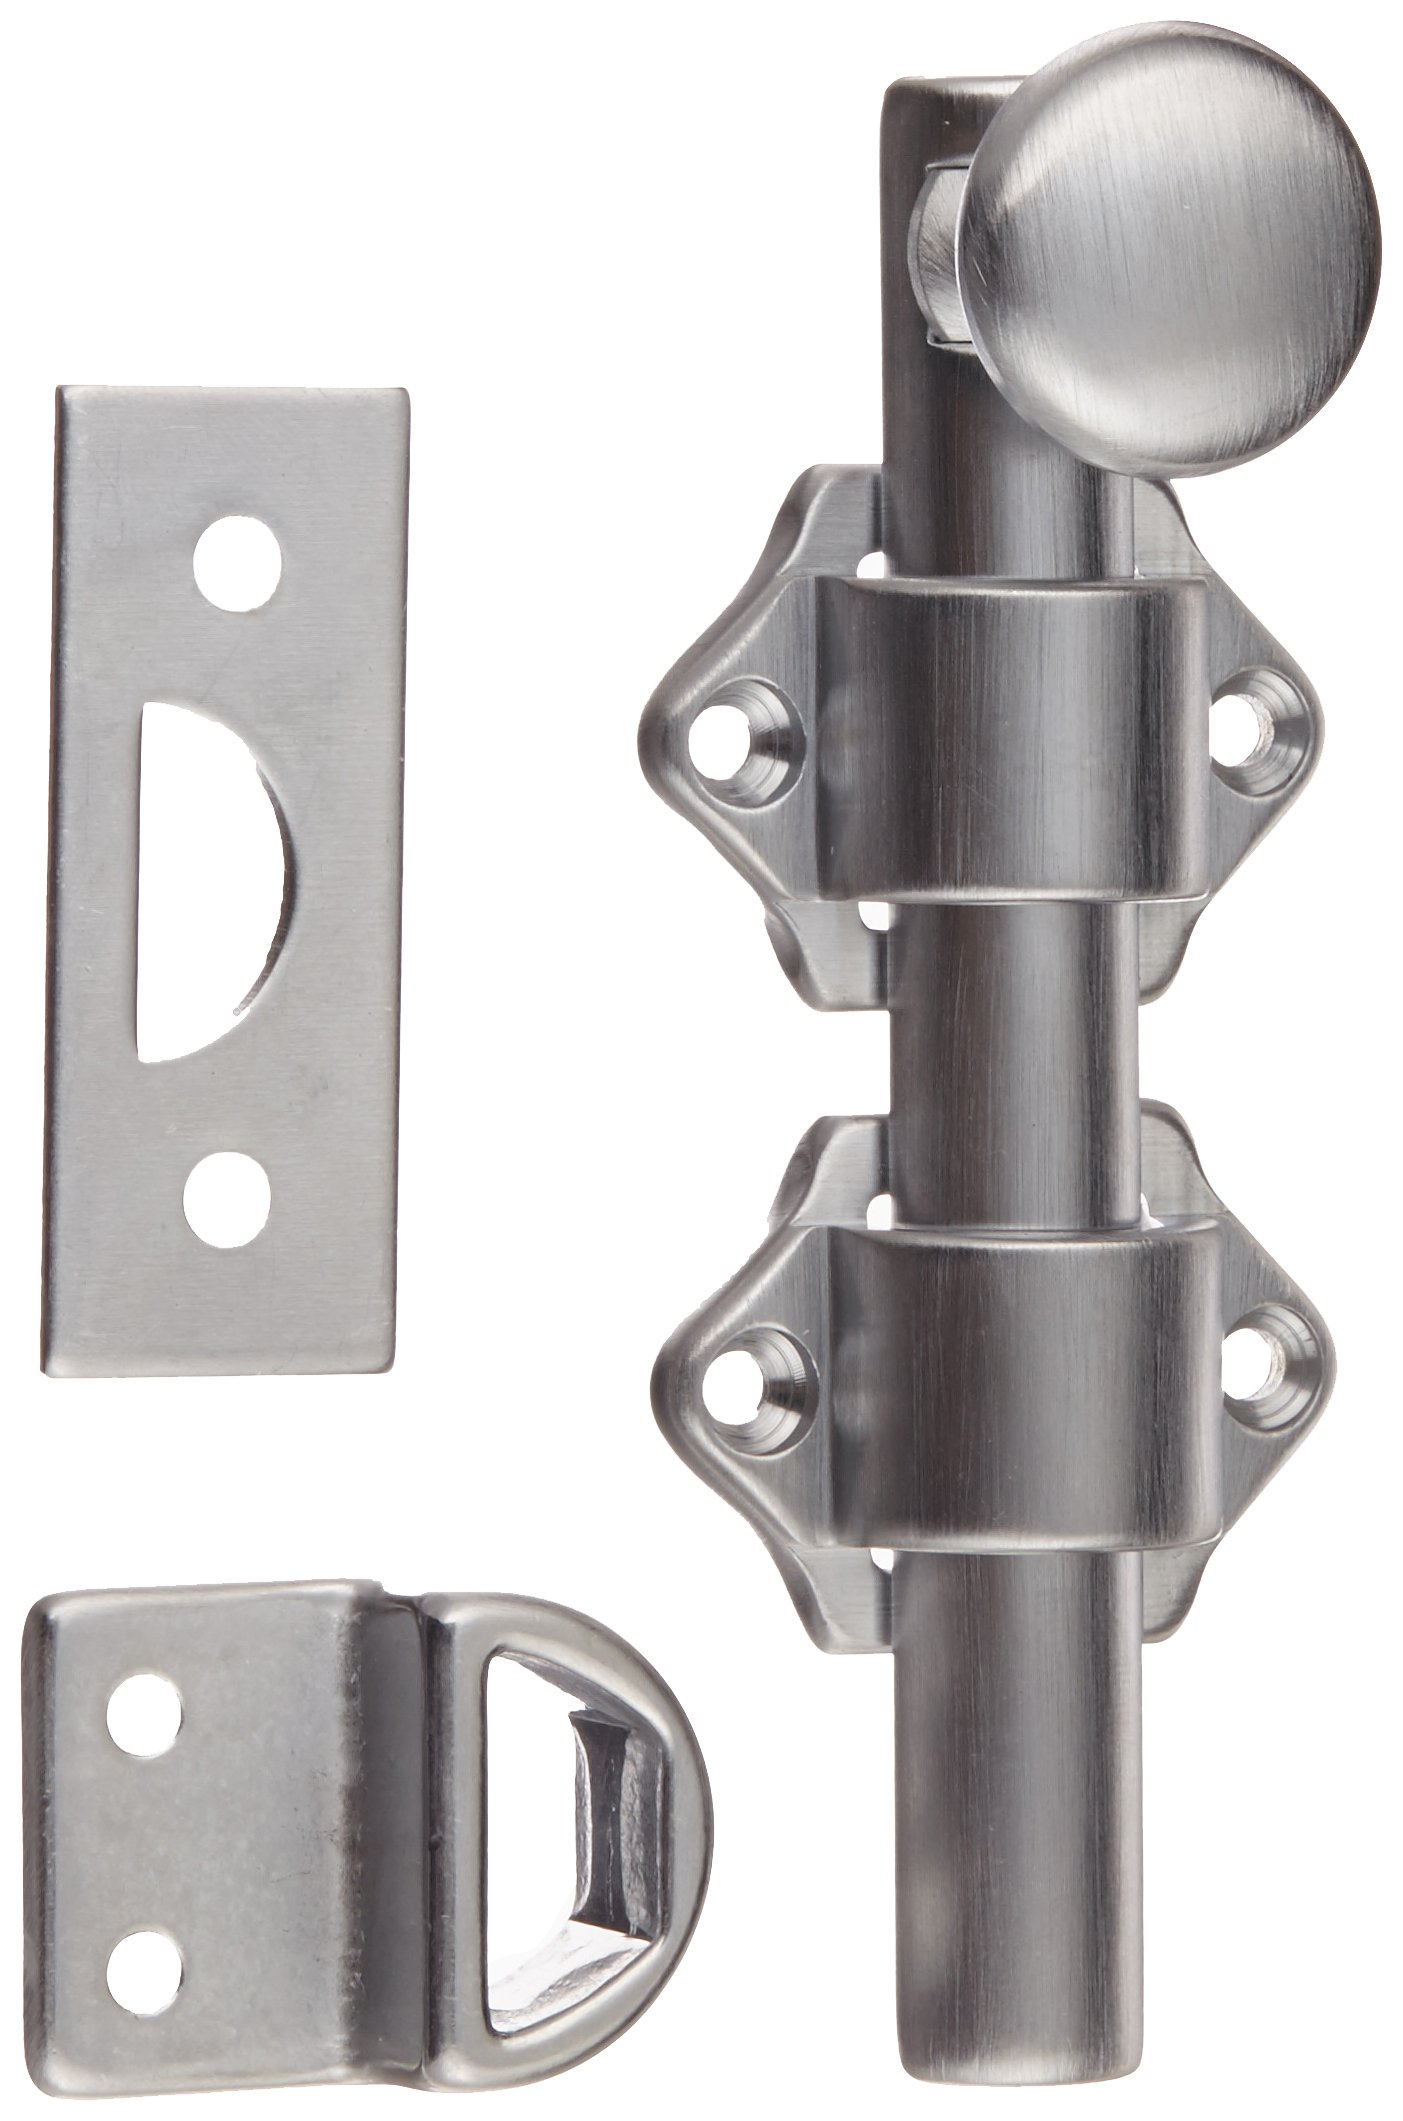 Rockwood 630-4.26D Solid Brass Surface Bolt with Universal And Mortise Strike, 2 Guide, 4'' Bolt Length, Brass Satin Chrome Plated Finish